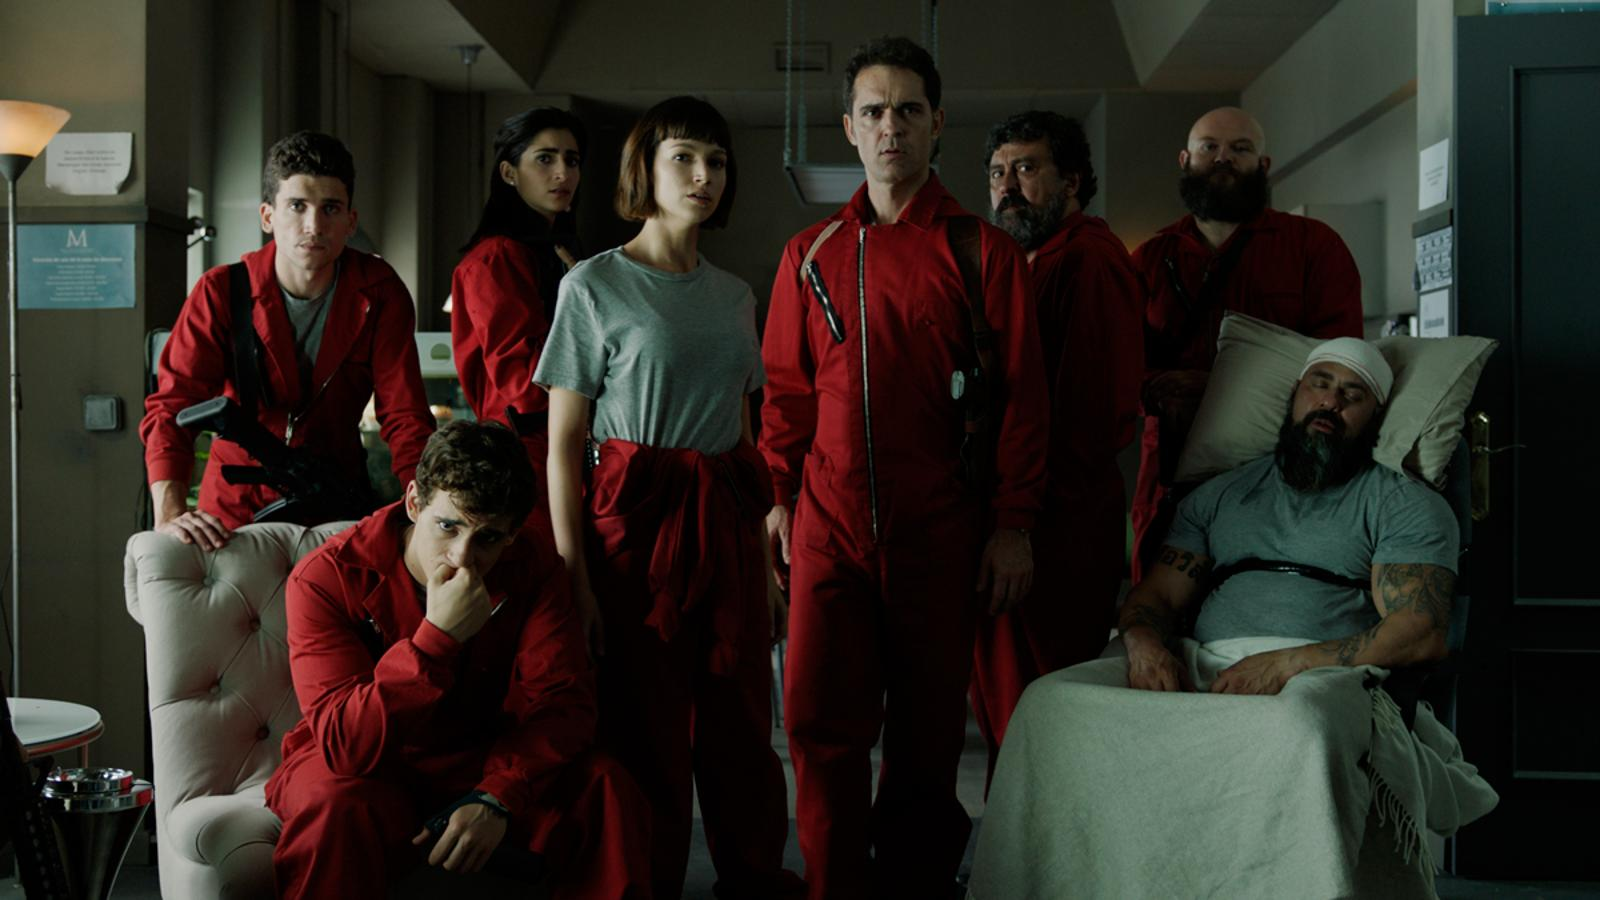 La Casa De Papel Wallpapers Free Pictures On Greepx